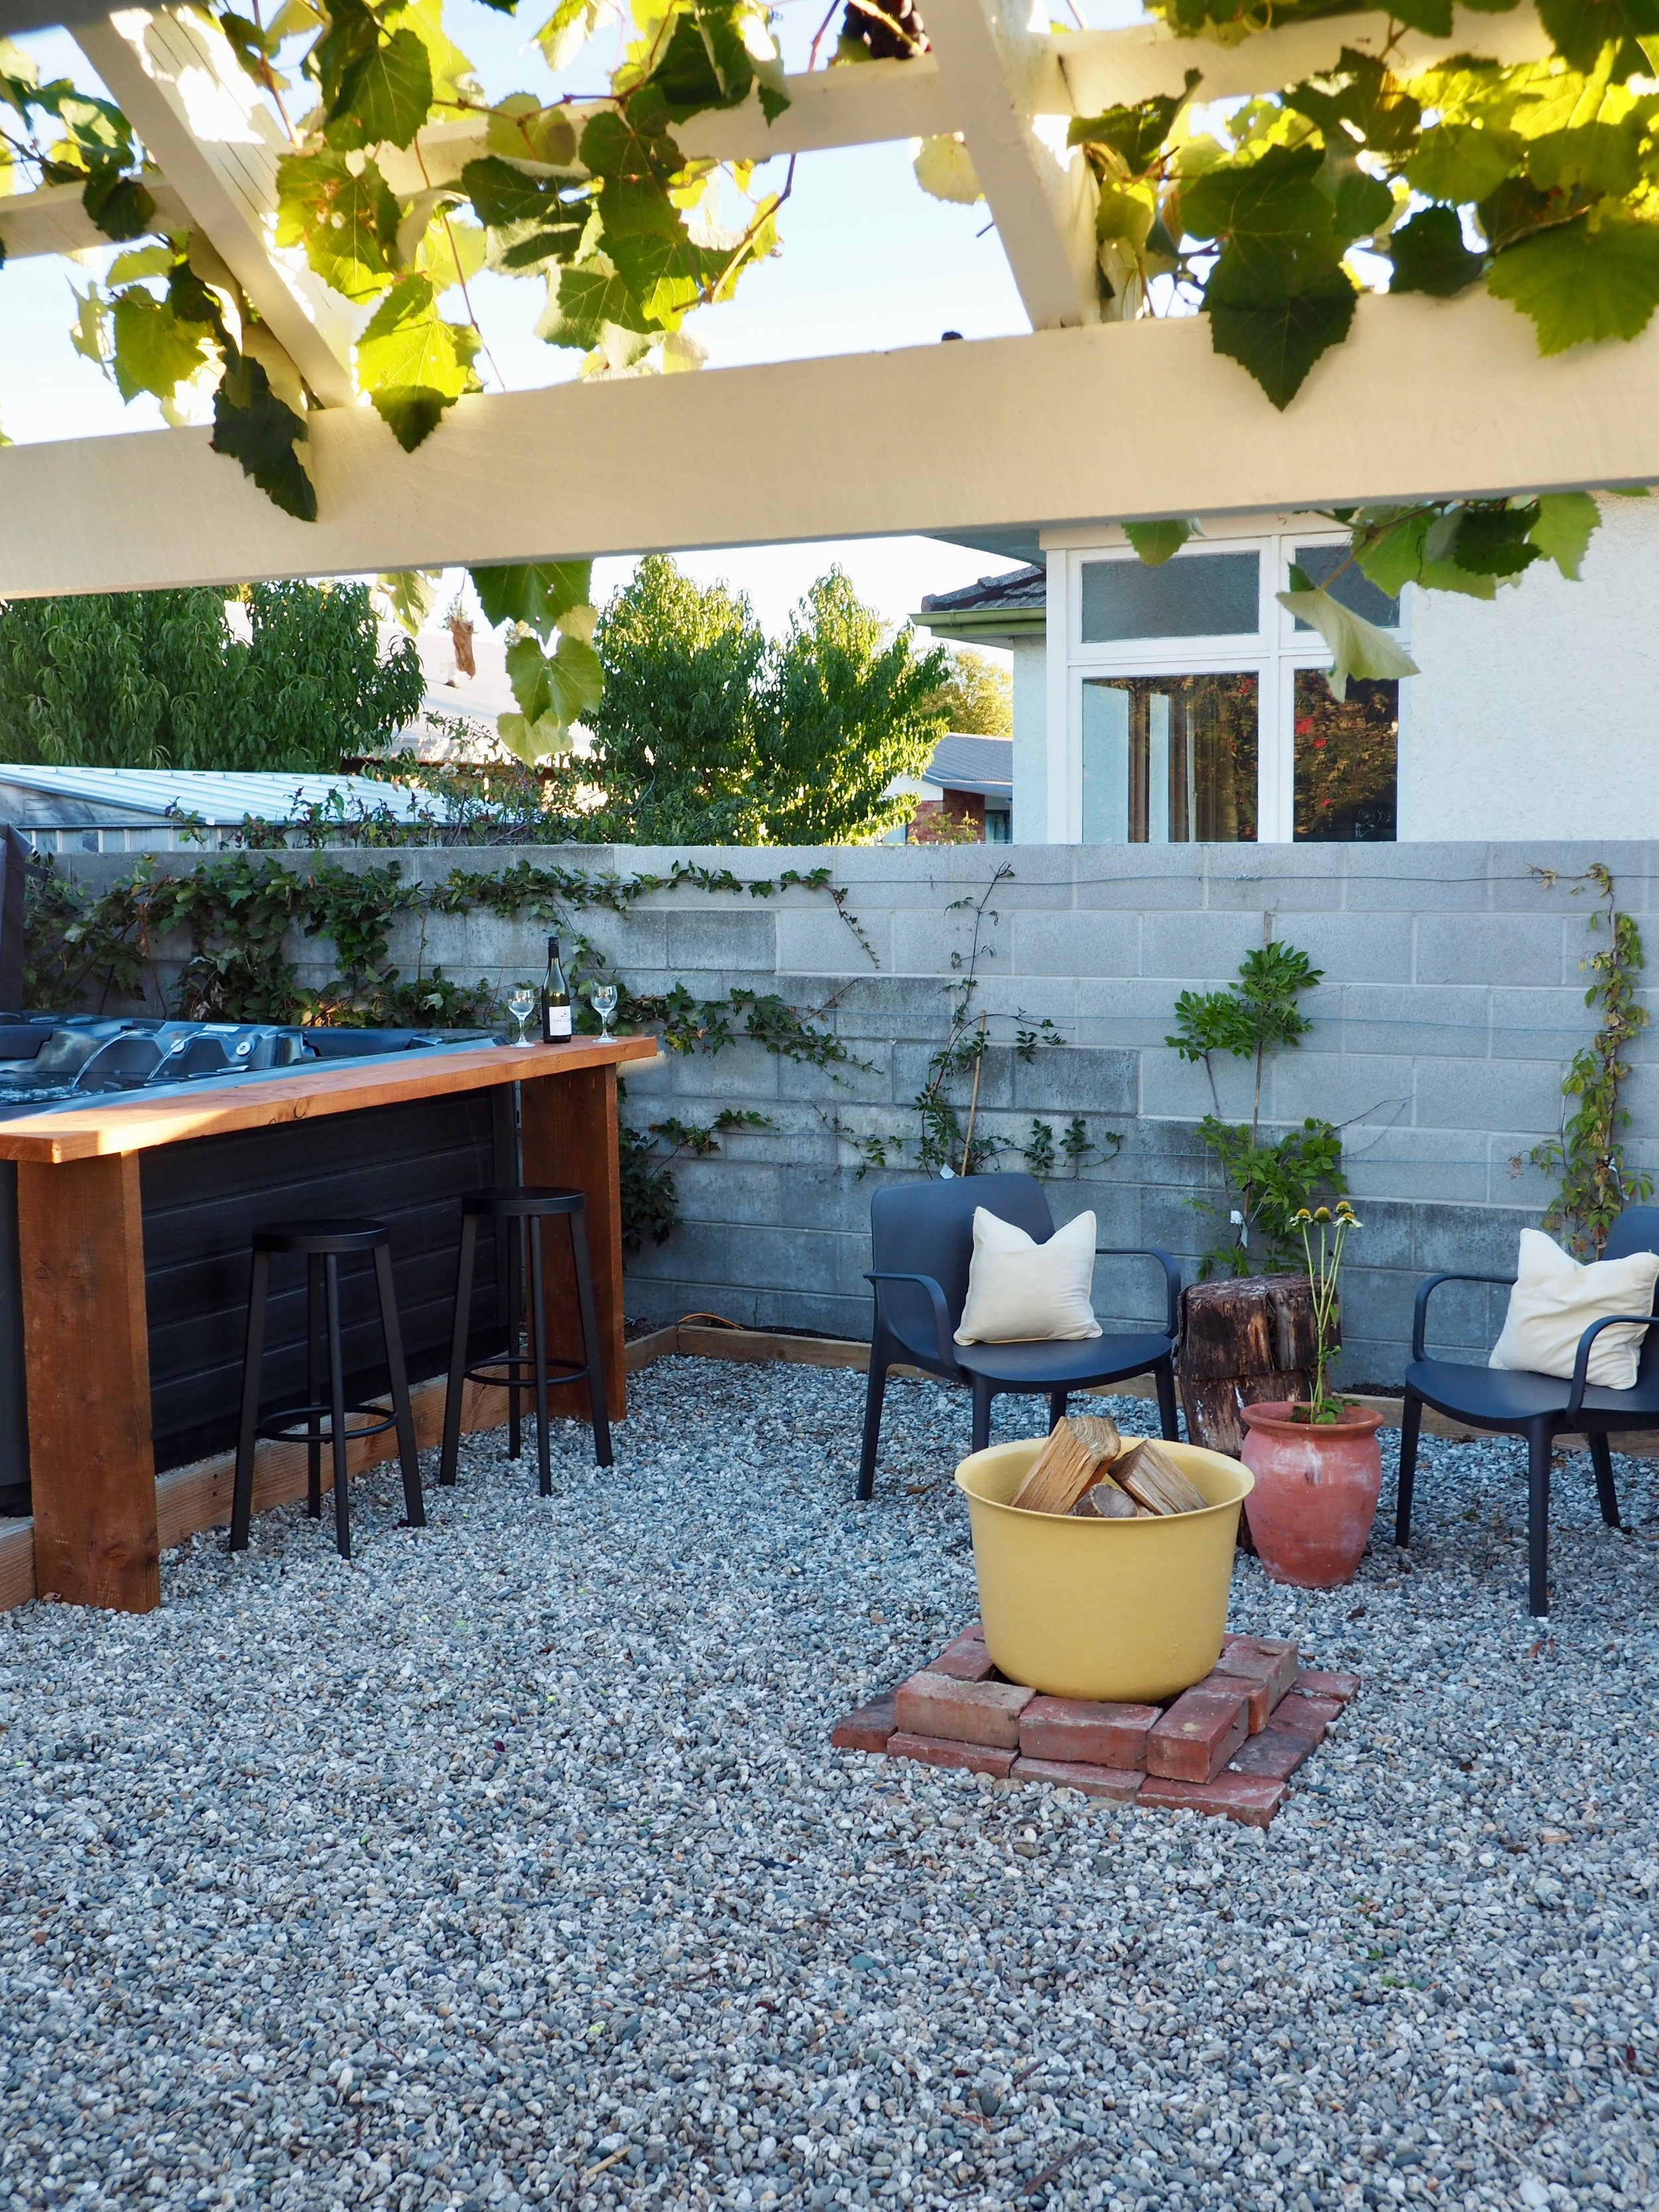 Exterior Room Reveal Pearson and Projects Charmer in Alexandra Alice and Caleb - 12.jpg